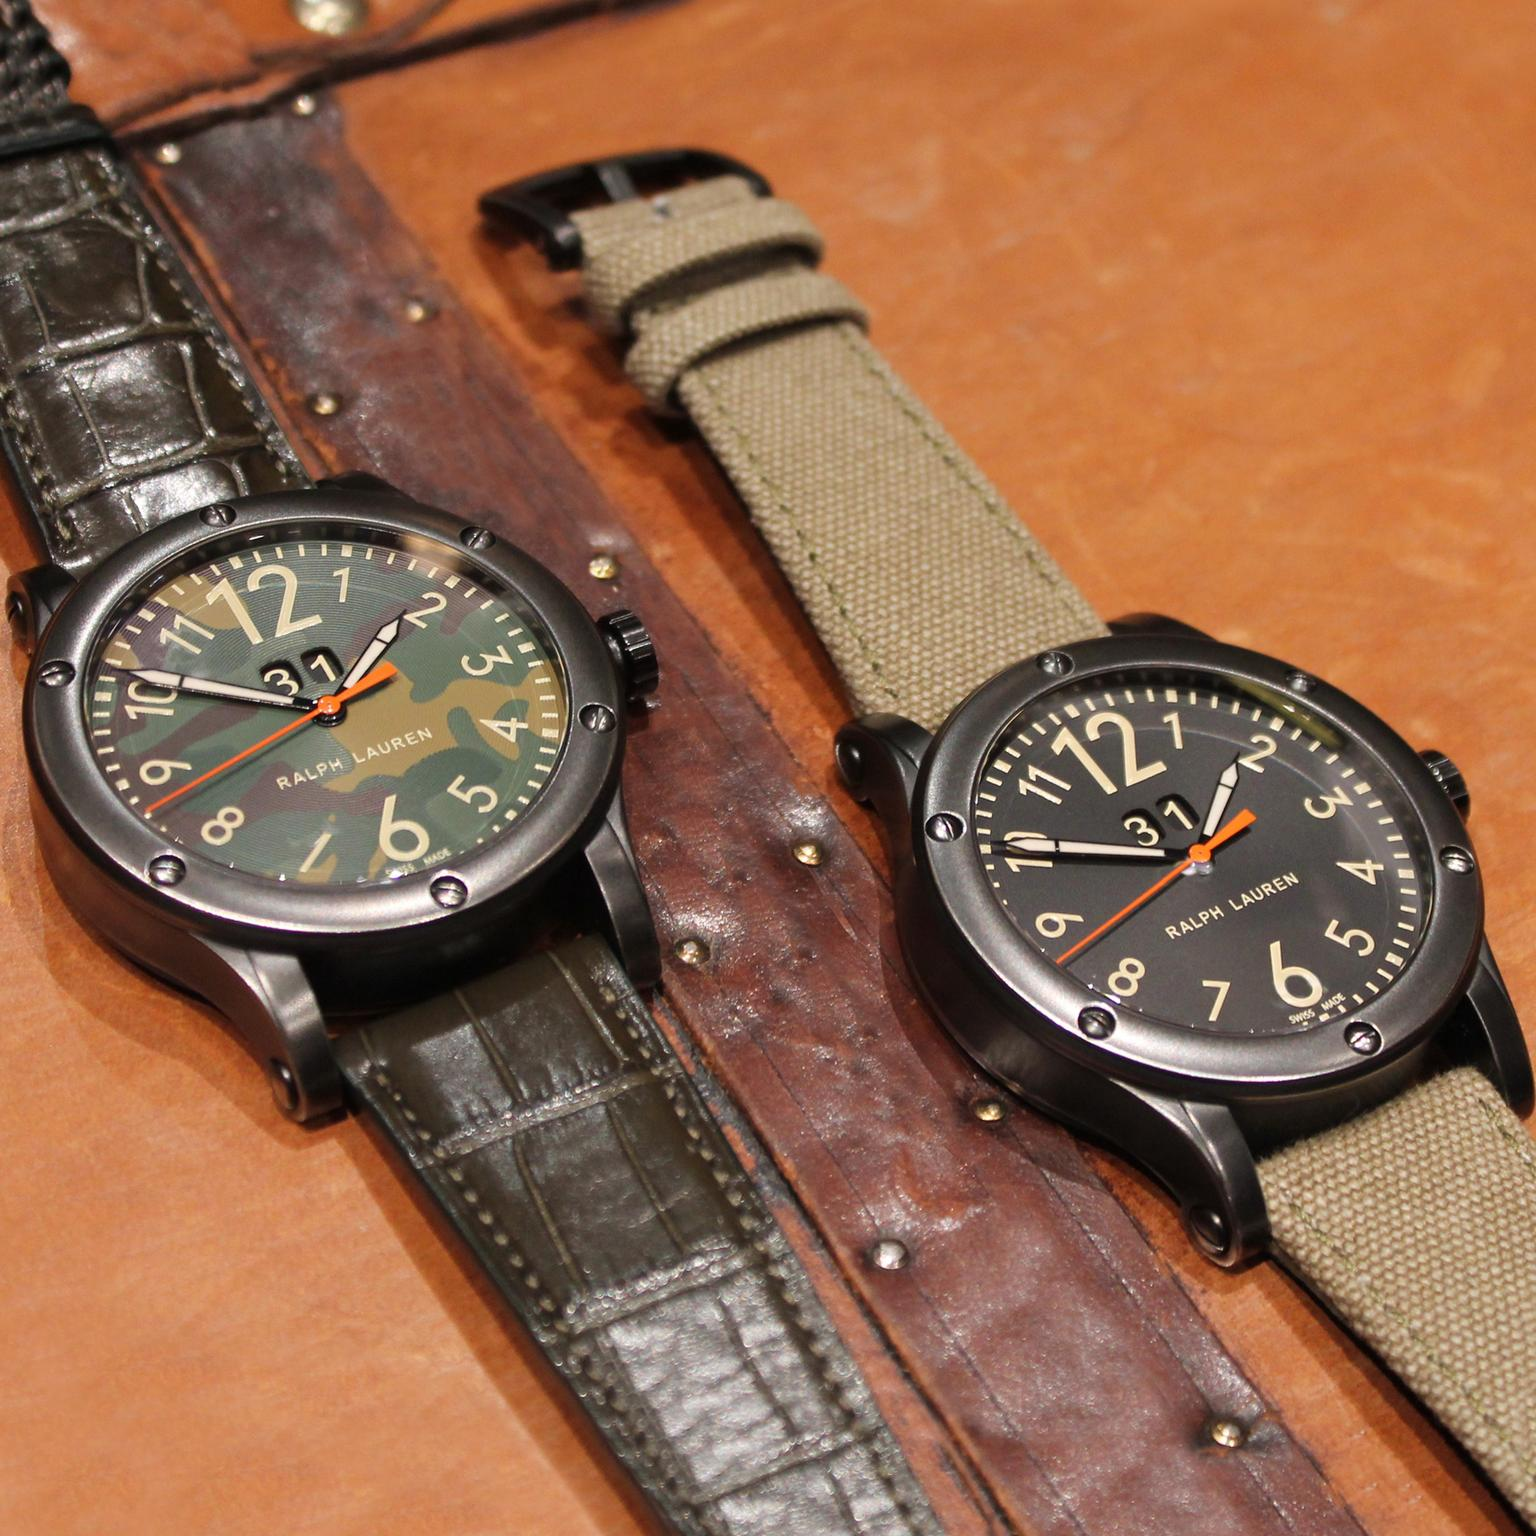 Ralph Lauren Safari Grand Date watches